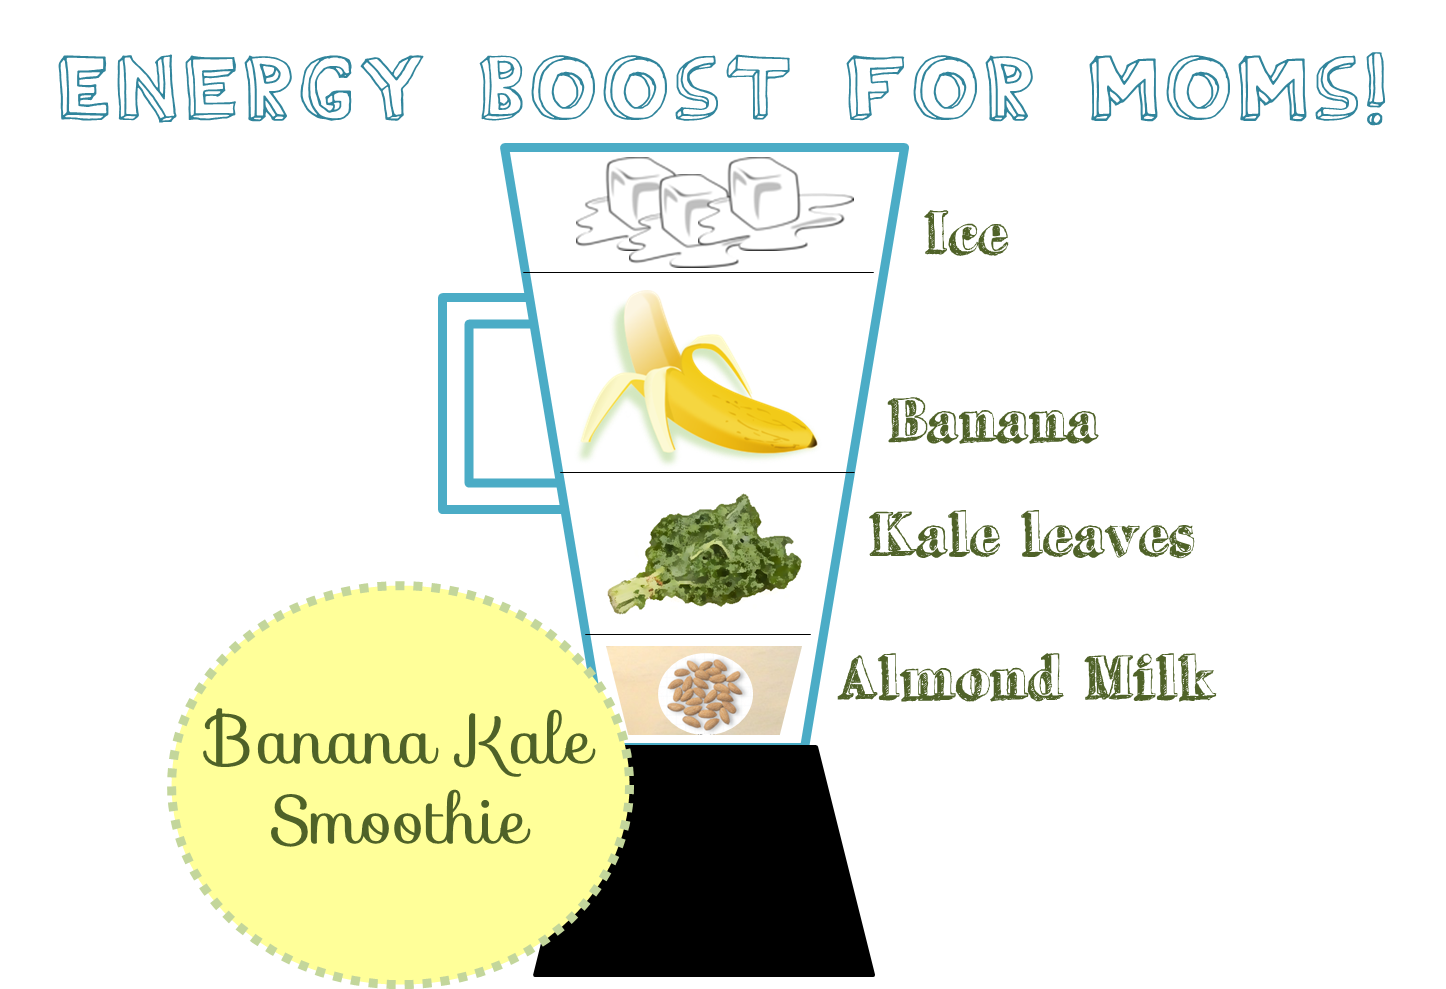 Ingredients for a banana kale smoothie include ice, banana, kale and almond milk.